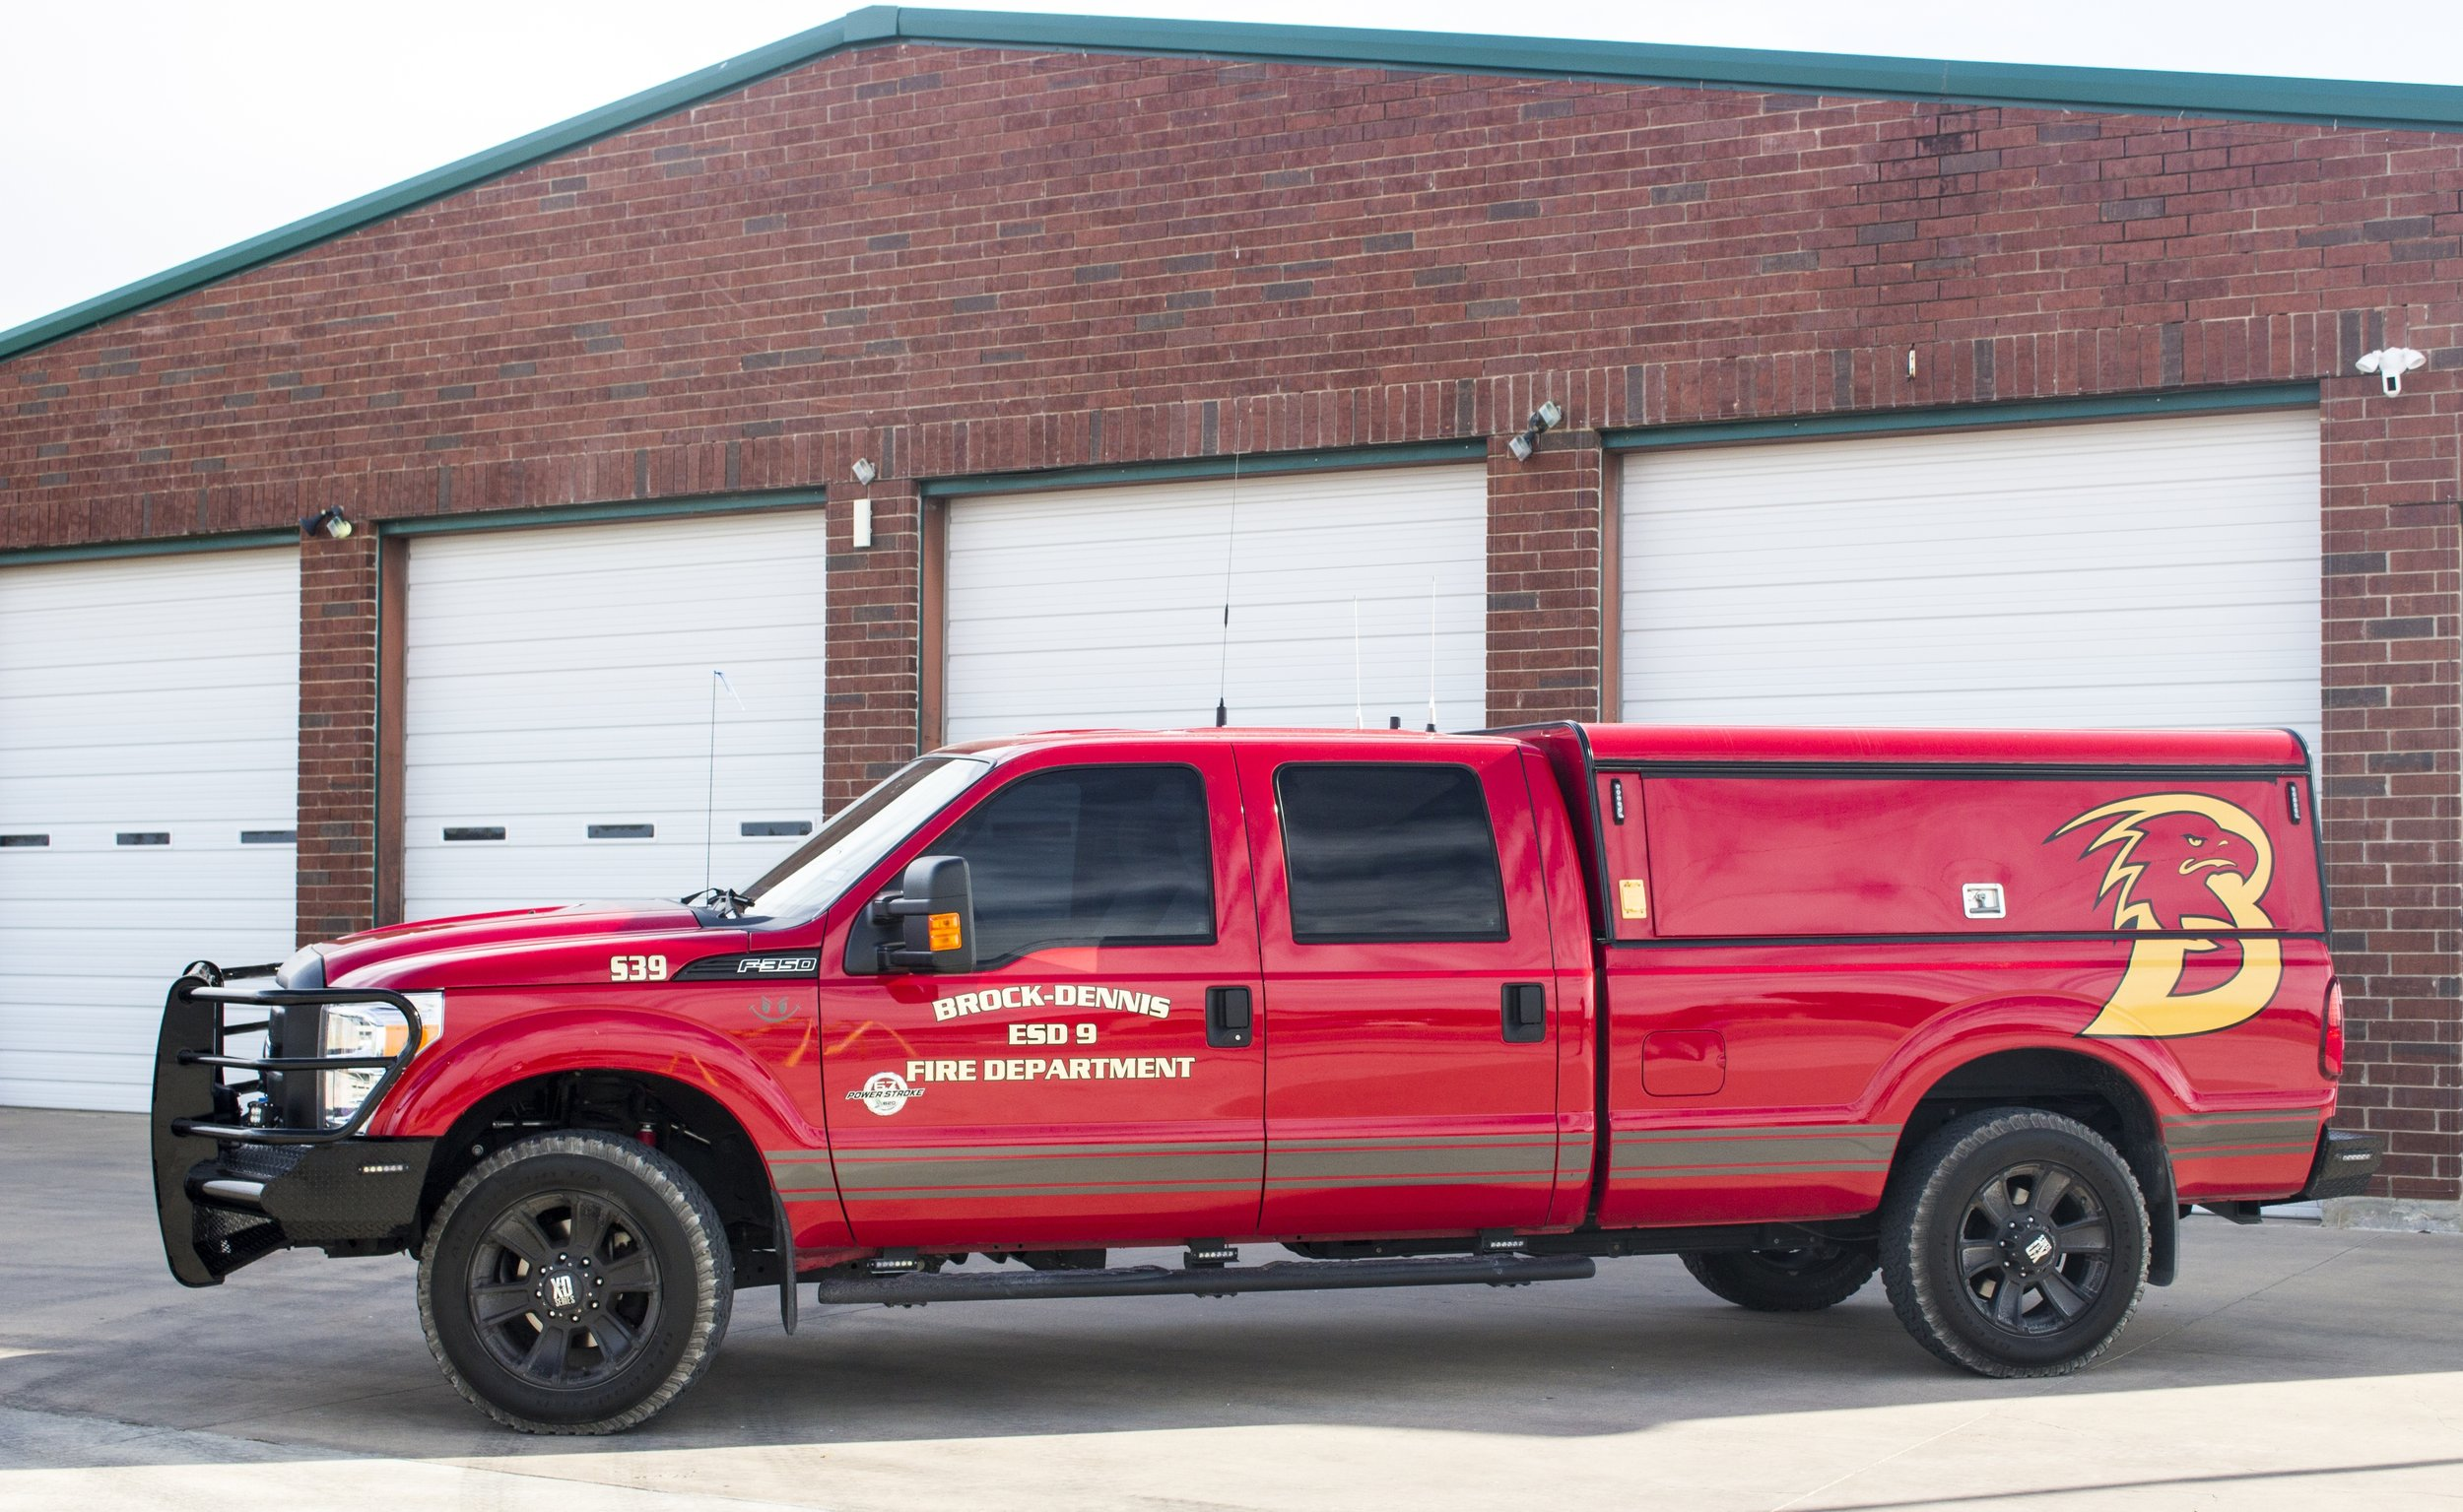 Squad 39 - A 2015 f350 housed at Station 1, this truck is used for Command and Primary EMS response. It has a full bed-length slide out in the back to hold Radio, EMS, and Rope Rescue equipment. This is also the Chief vehicle.